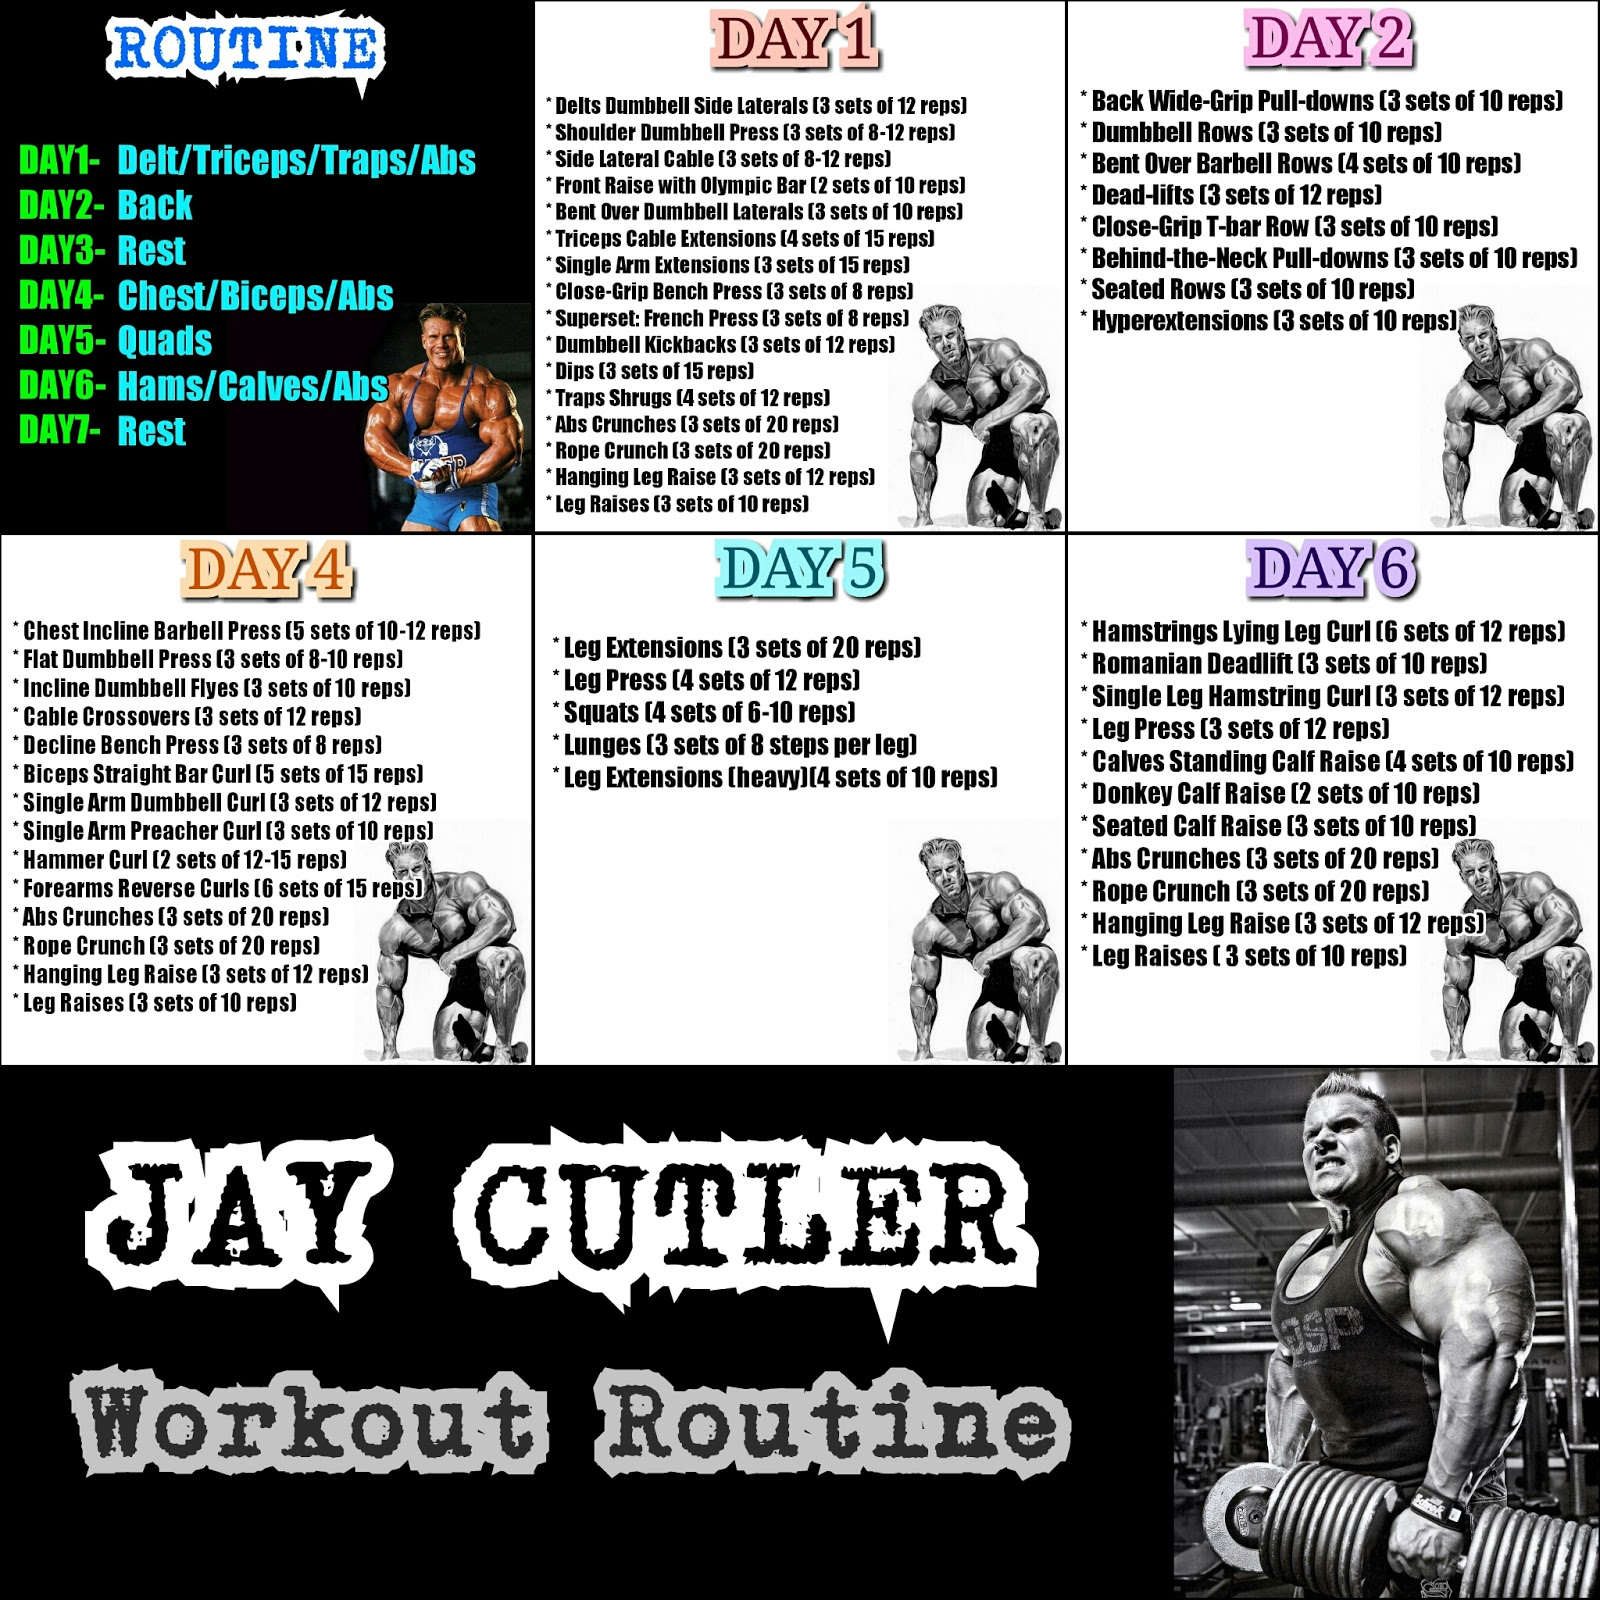 Exercise Workout Plan: Fitness Routine: Workout Routine Jay Cutler